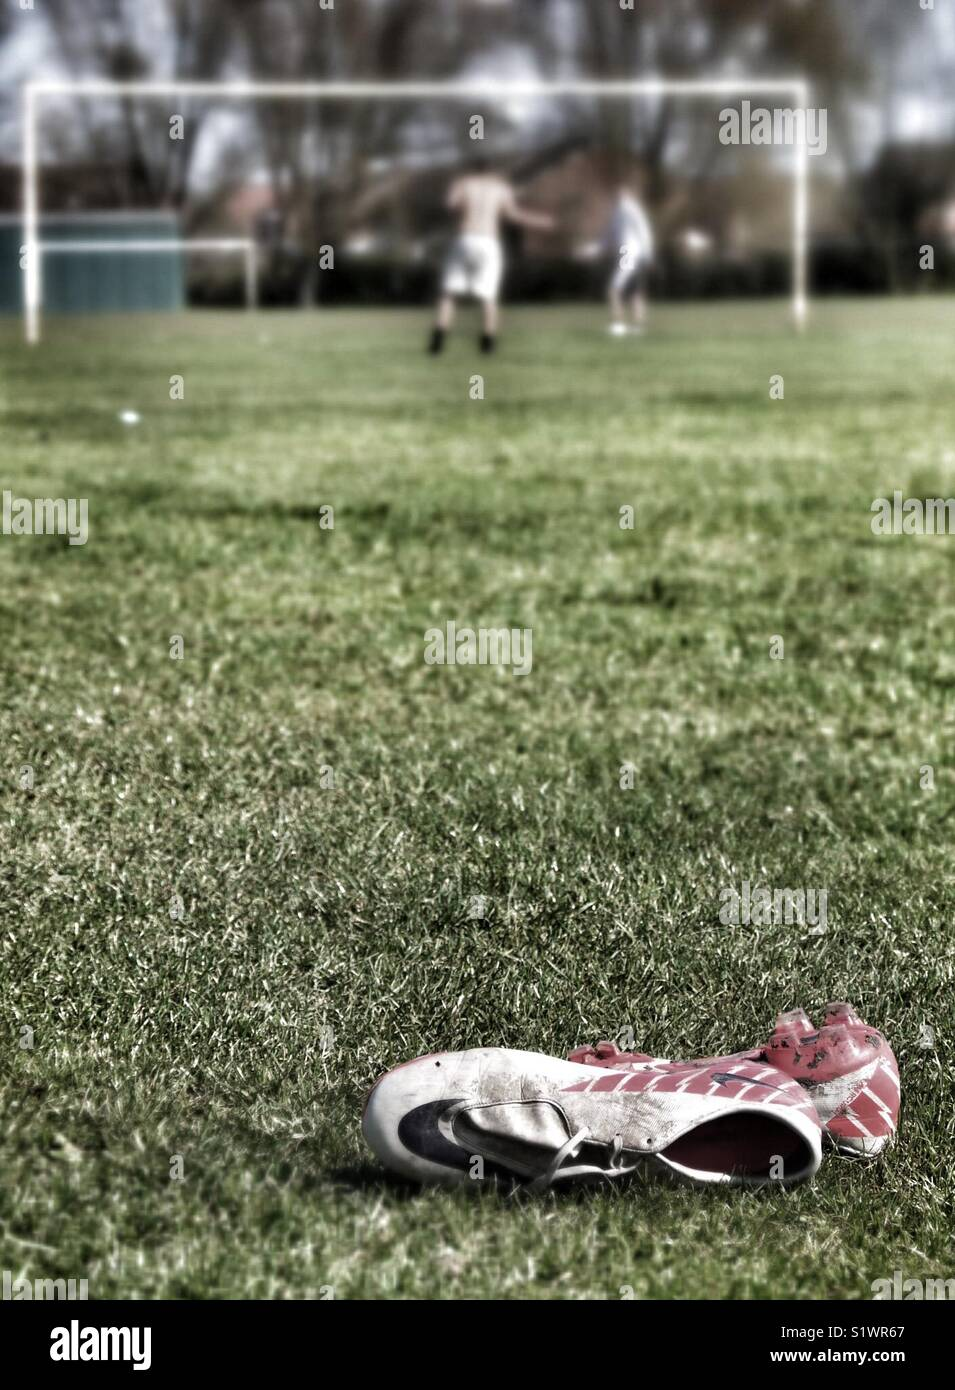 Pair of football boots lying in grass. Stock Photo